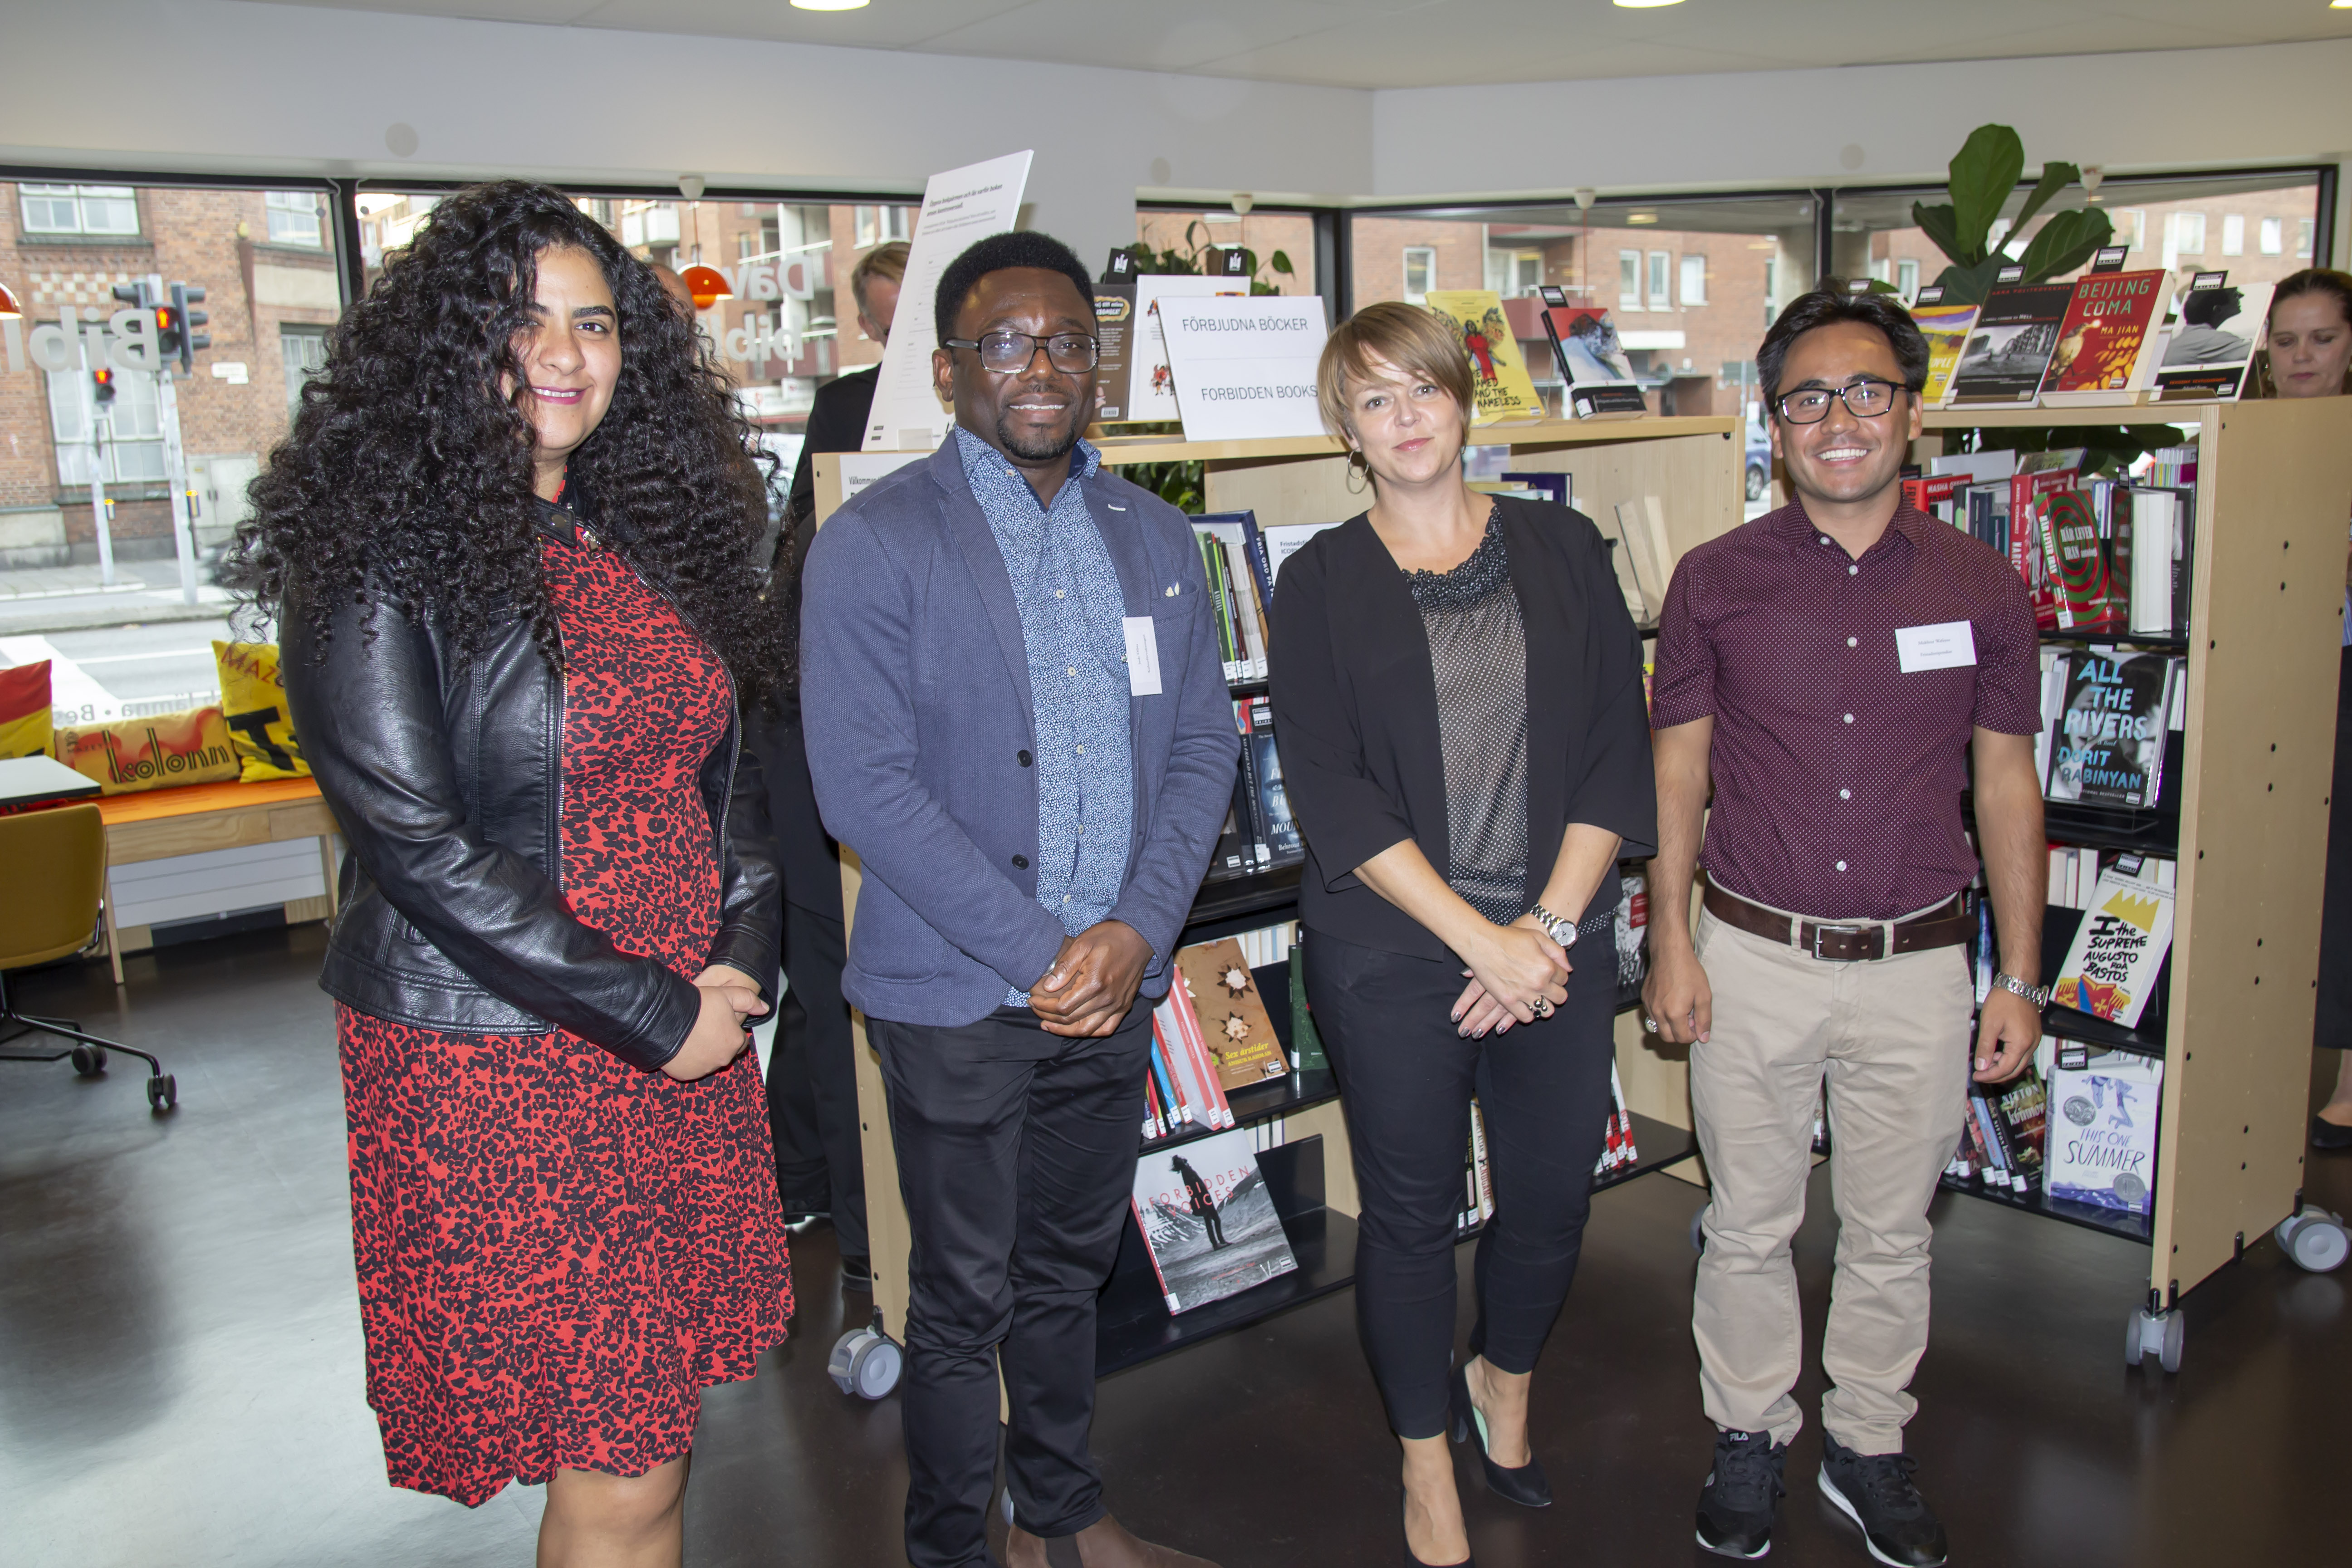 At the opening of the Dawit Isaak Library in Malmö, Sweden 15 September 2020. With three current and former ICORN resident, Yasmine El Baramny, Jude Dibia and Mukhtar Wafayee with Mayor of Malmö CIty, Katrin Stjernfeldt Jammeh. Photo.